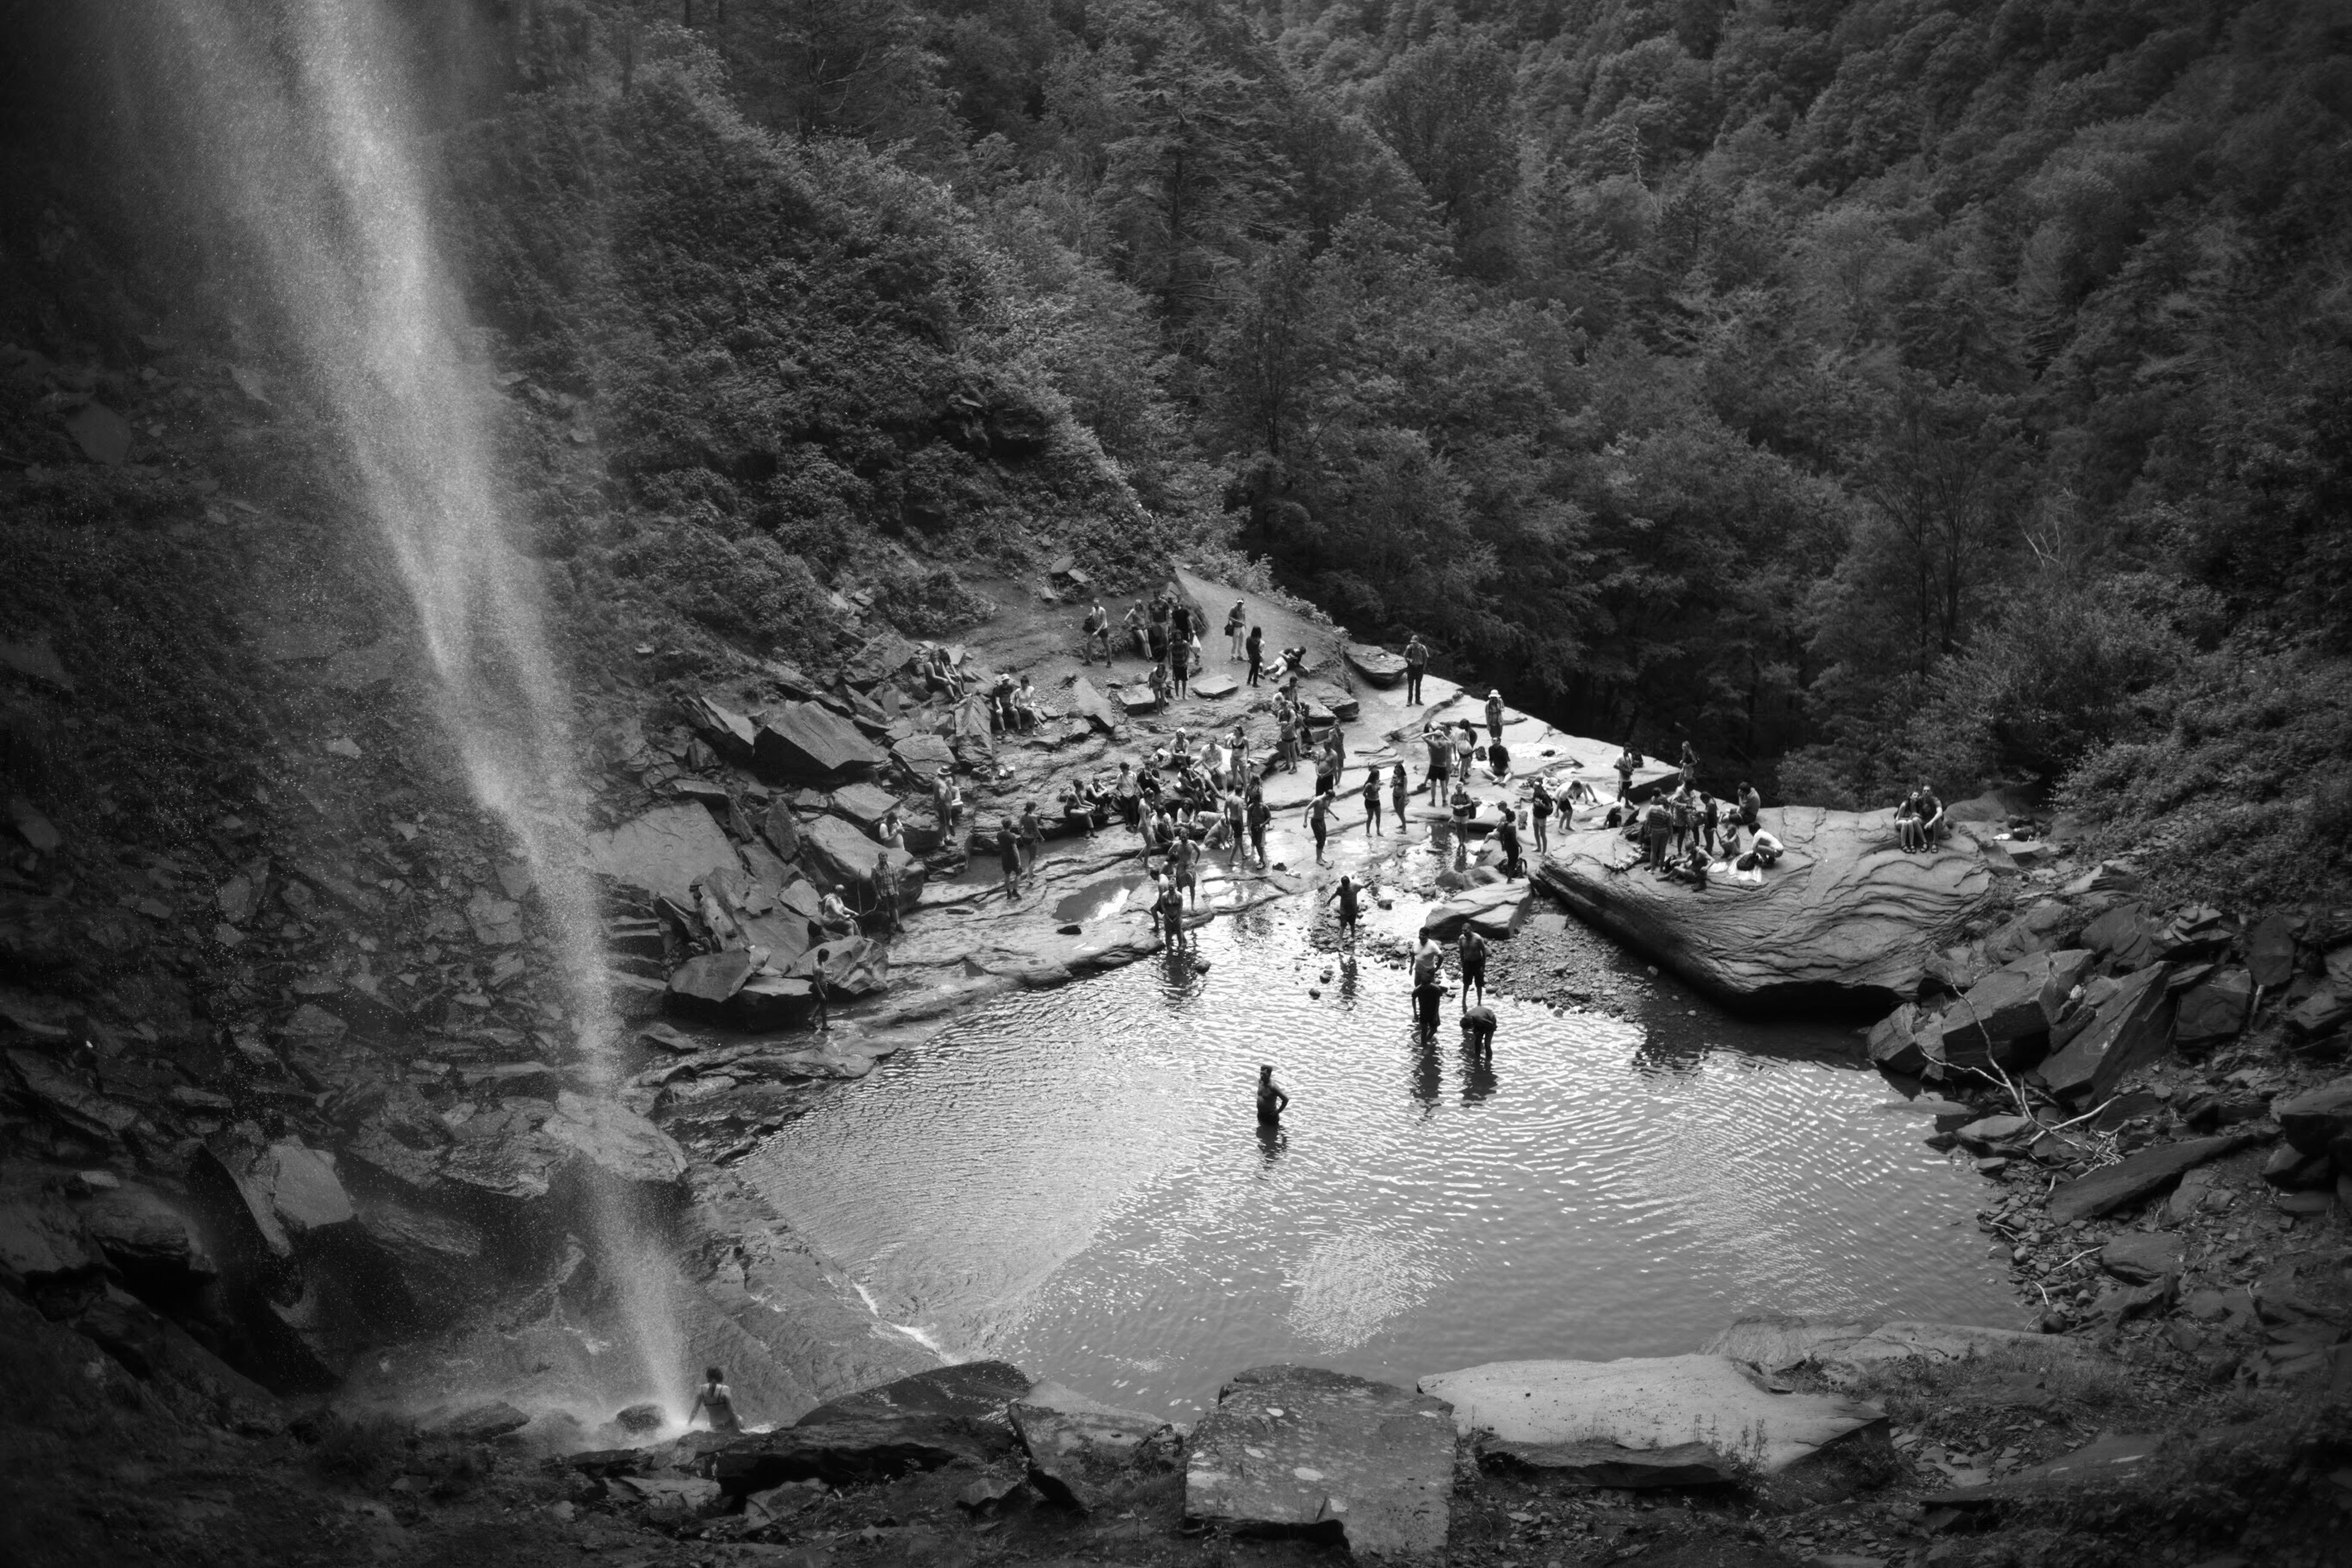 nature, water, high angle view, real people, leisure activity, large group of people, day, beauty in nature, outdoors, physical geography, scenics, tree, vacations, mountain, waterfall, hot spring, people